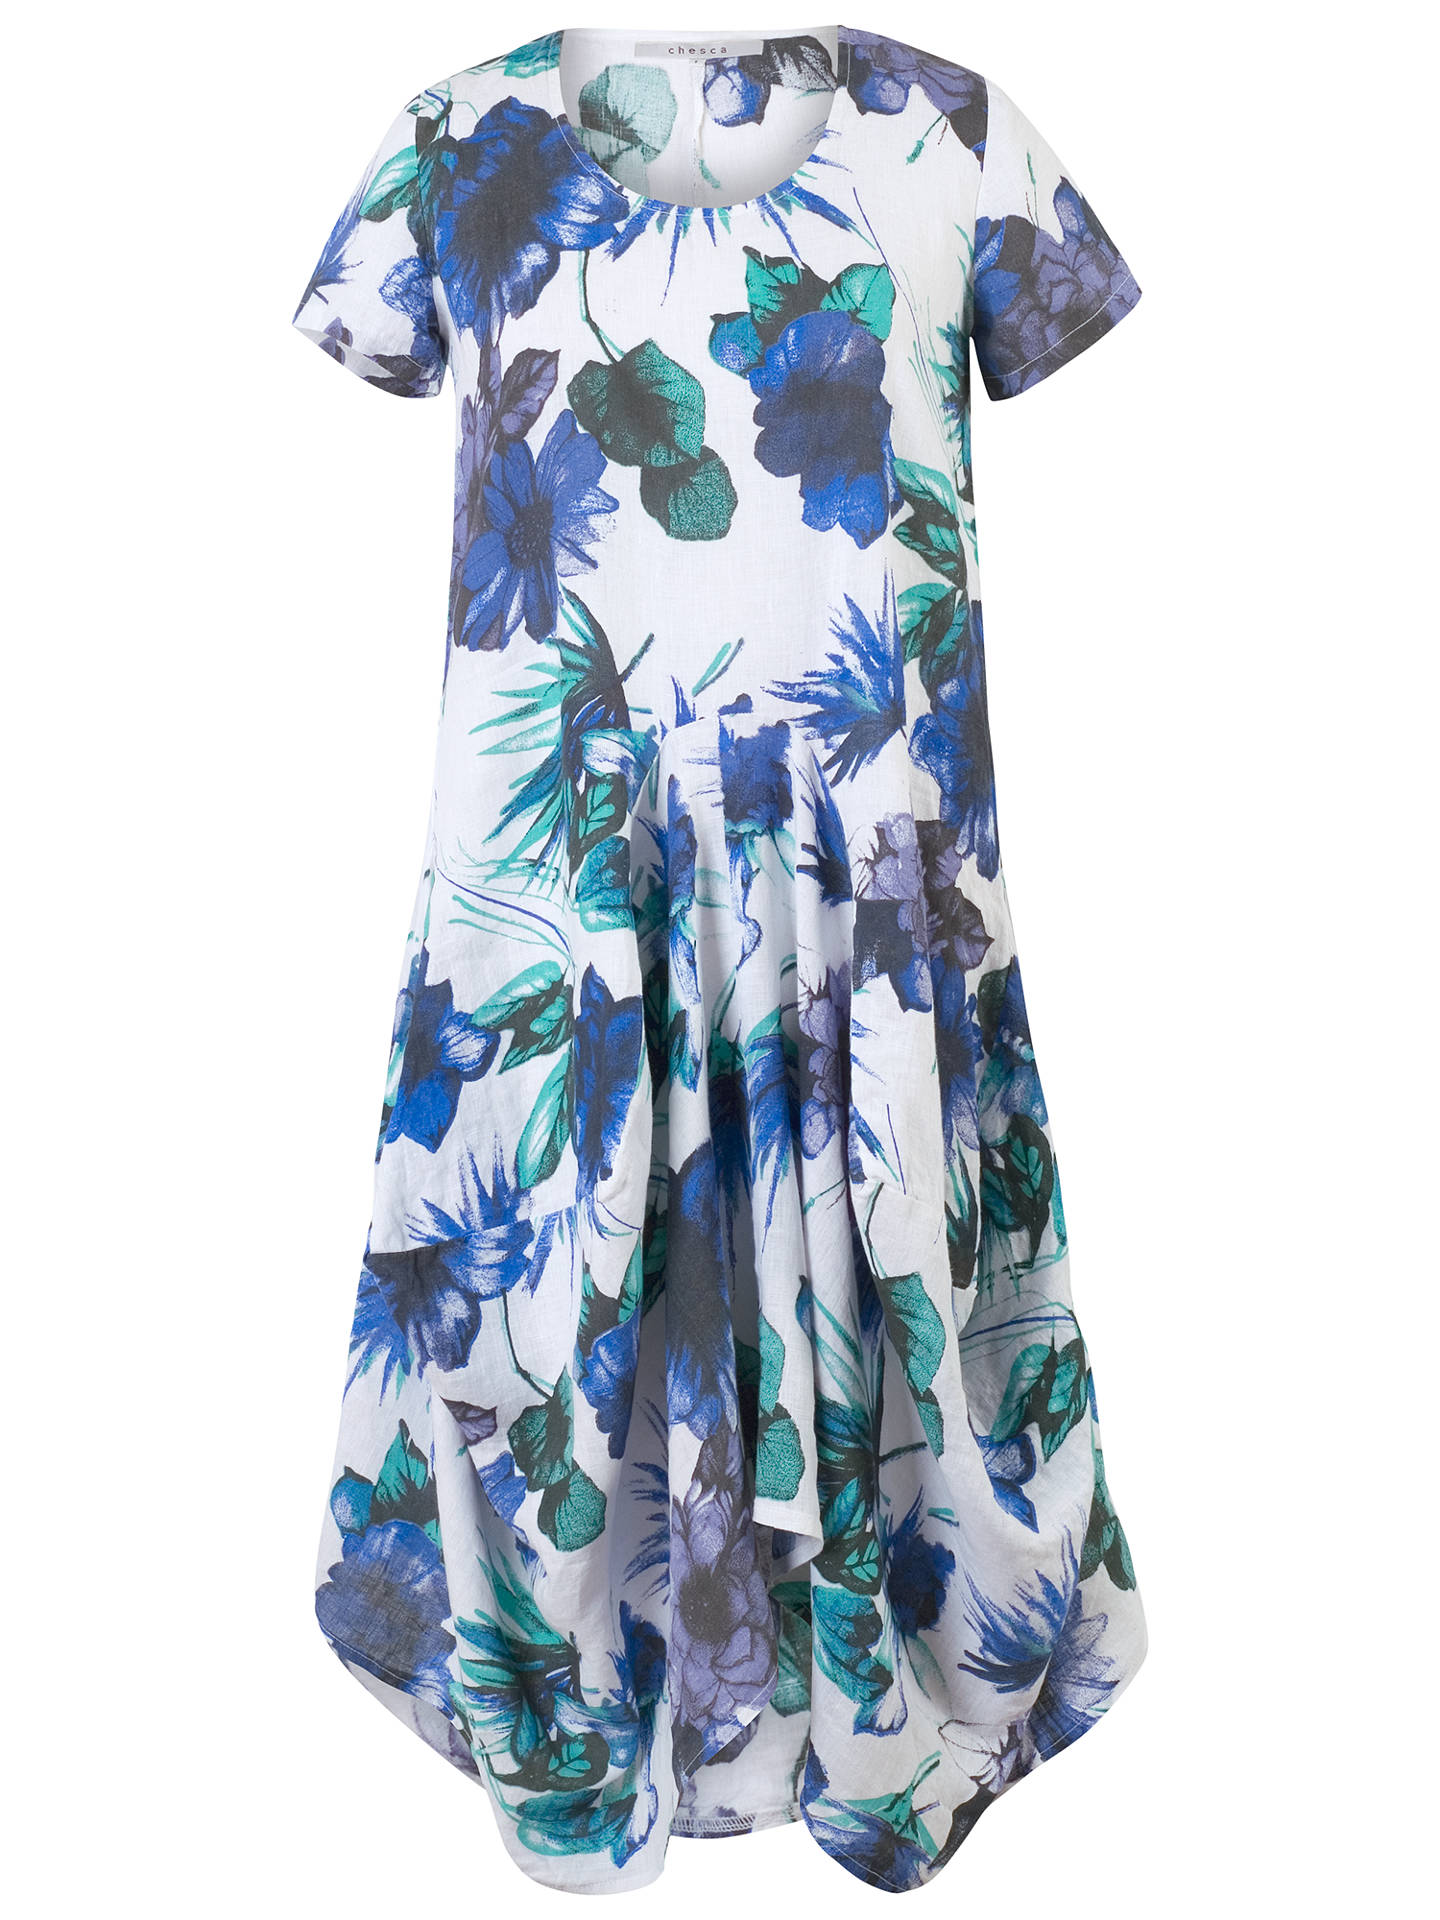 Buy Chesca Floral Print Linen Dress